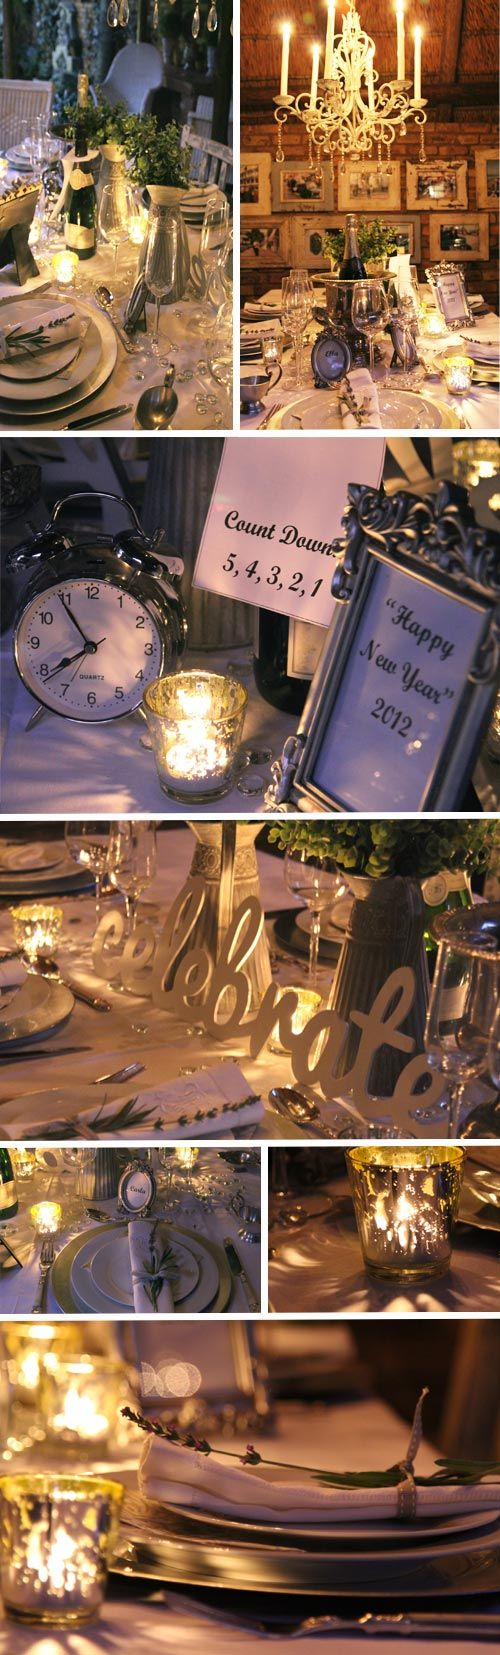 Moi Decor's New Years Inspiration!